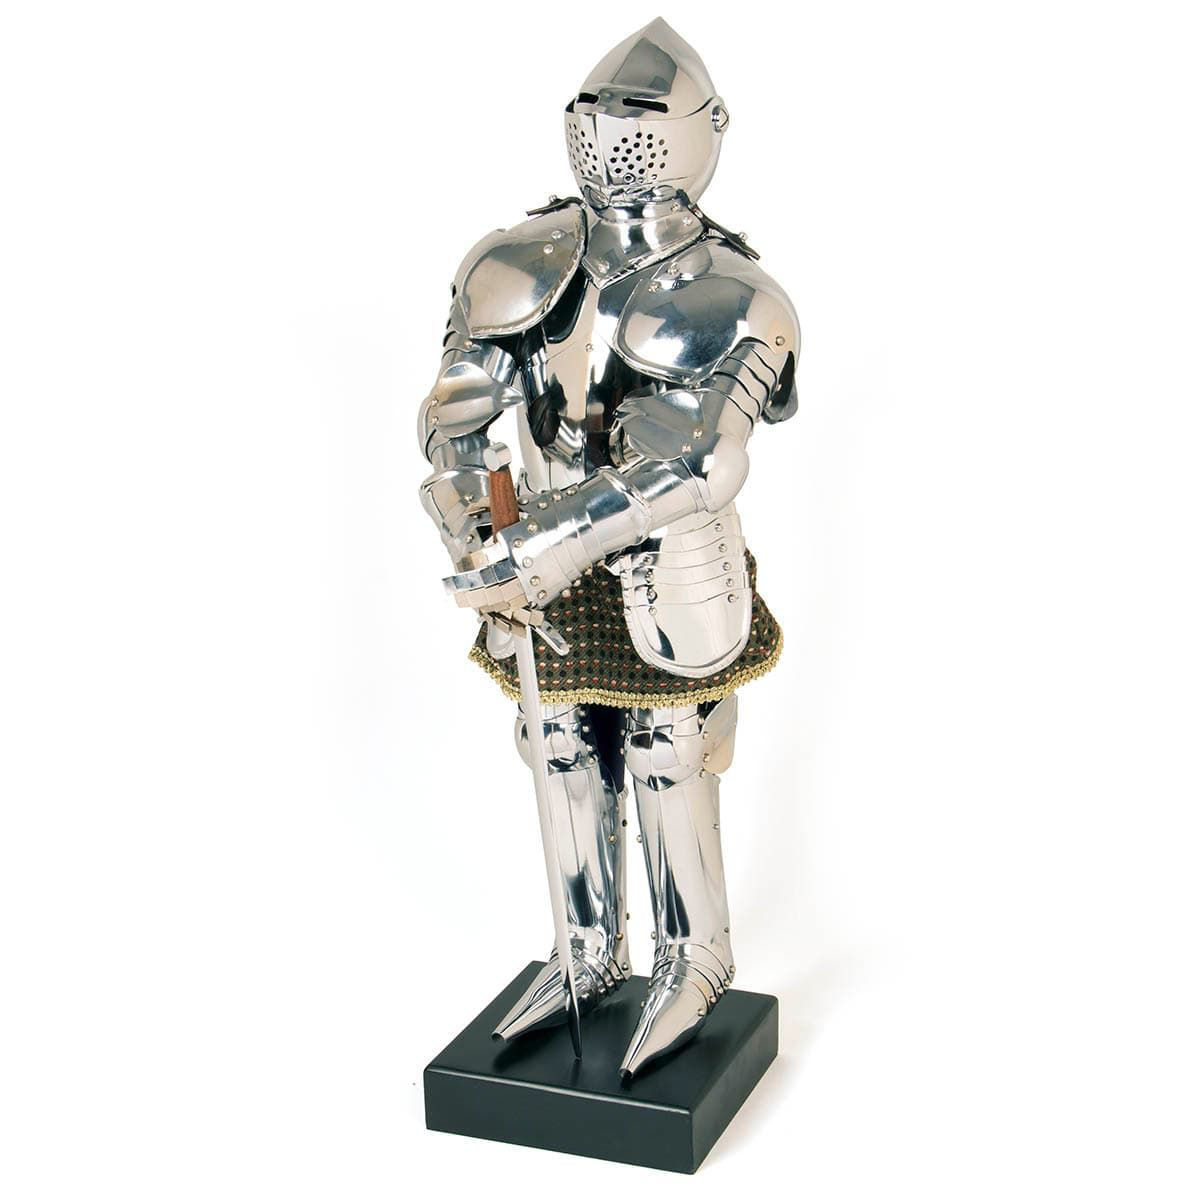 Miniature Suit of Armour has moveable joints and riveted plates with each part separate like a full sized suit